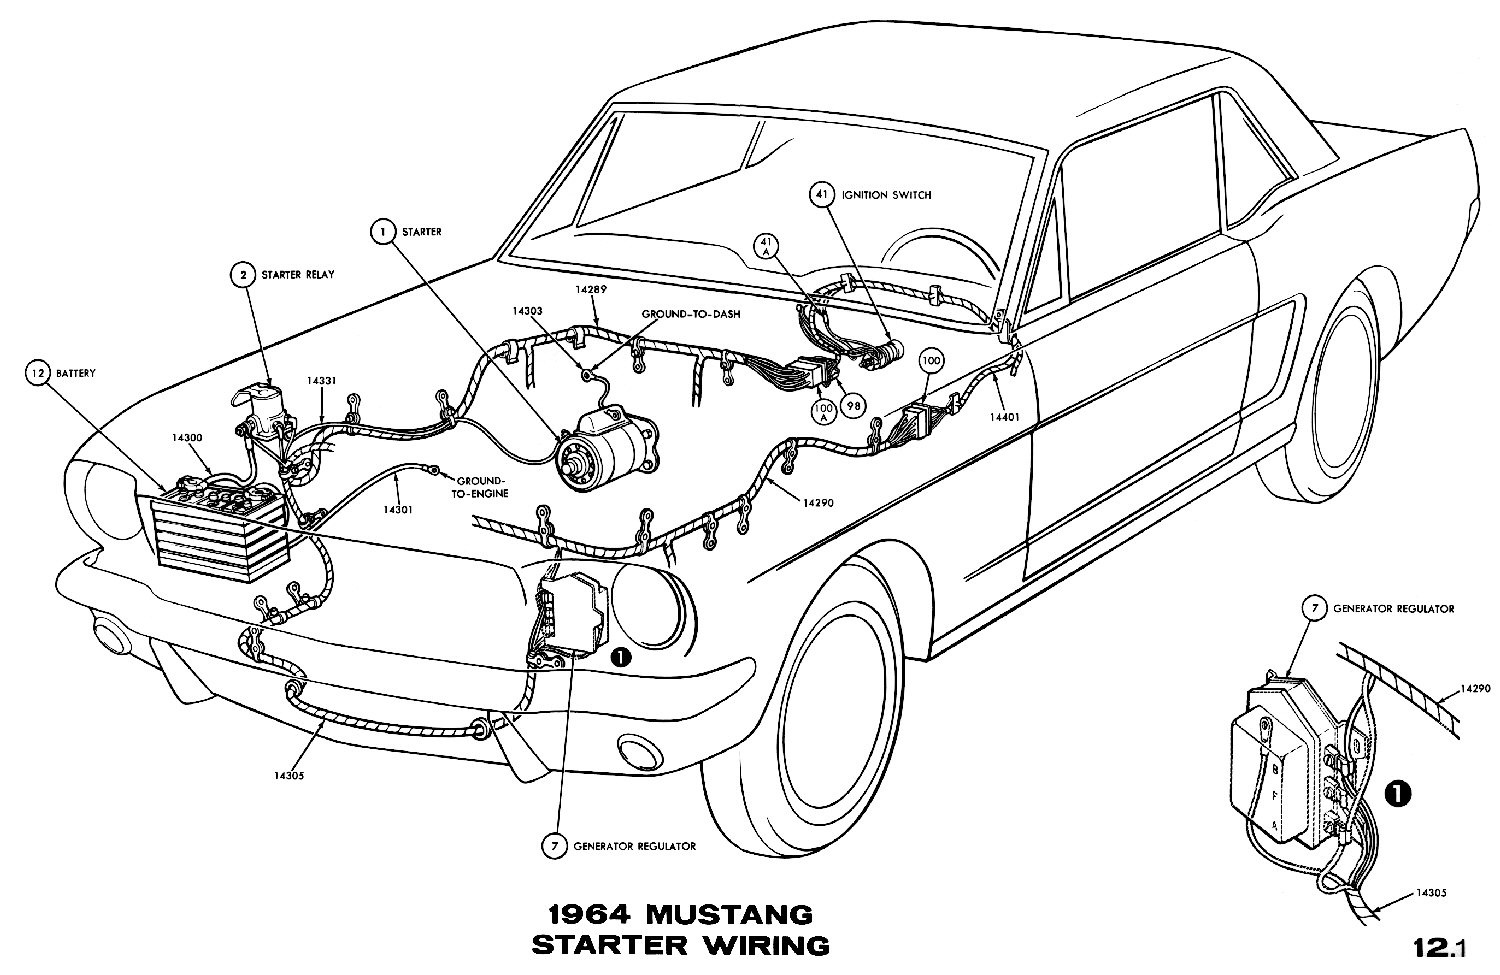 wiring diagram for starter wiring image wiring diagram 1964 mustang wiring diagrams average joe restoration on wiring diagram for starter